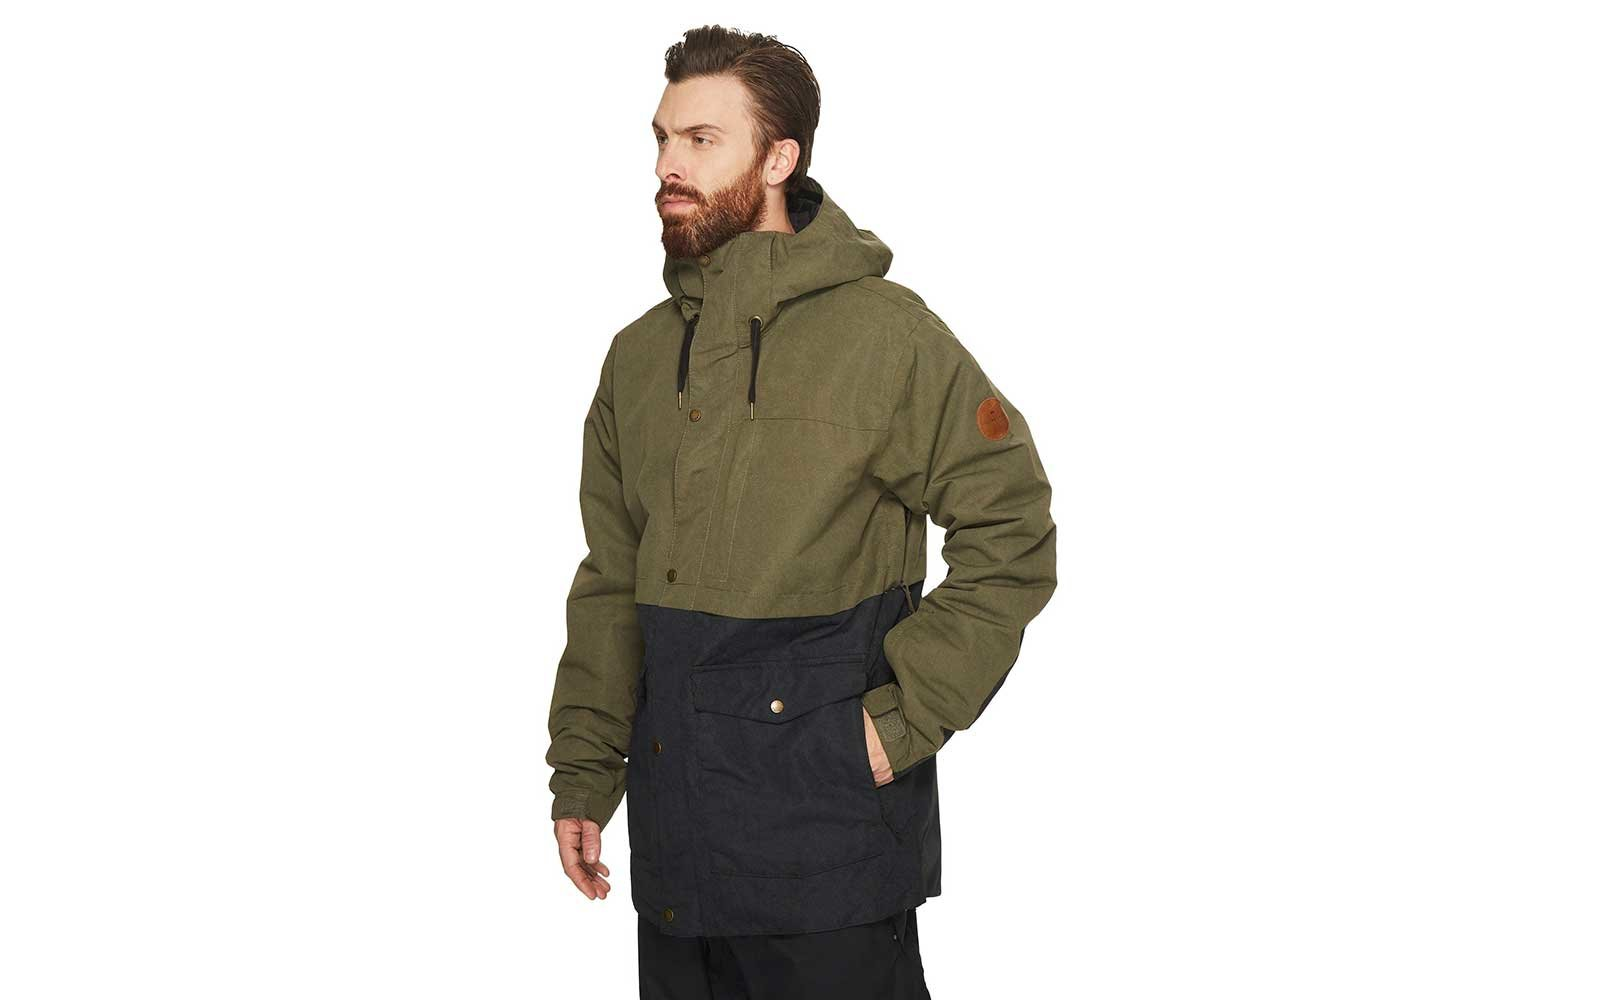 Green snow jacket from Quiksilver